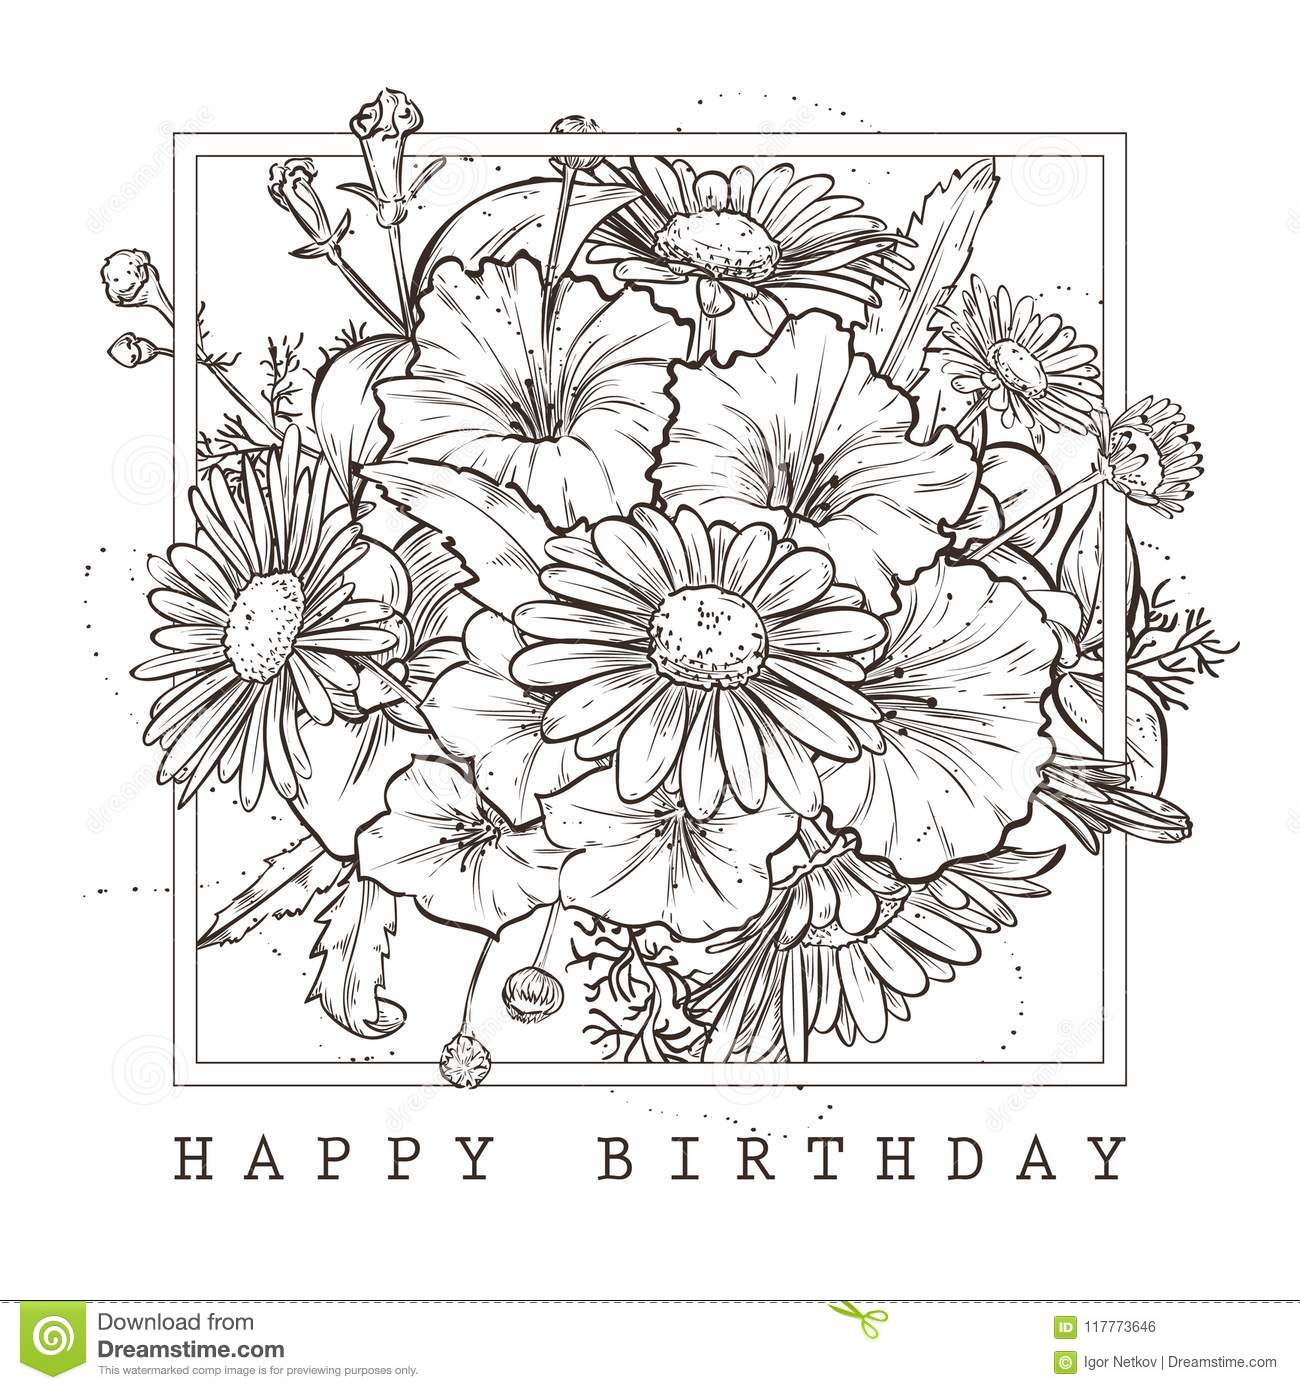 Greeting Card With Happy Birthday Wishes And A Bouquet Of Chamomile Petunia Flowers